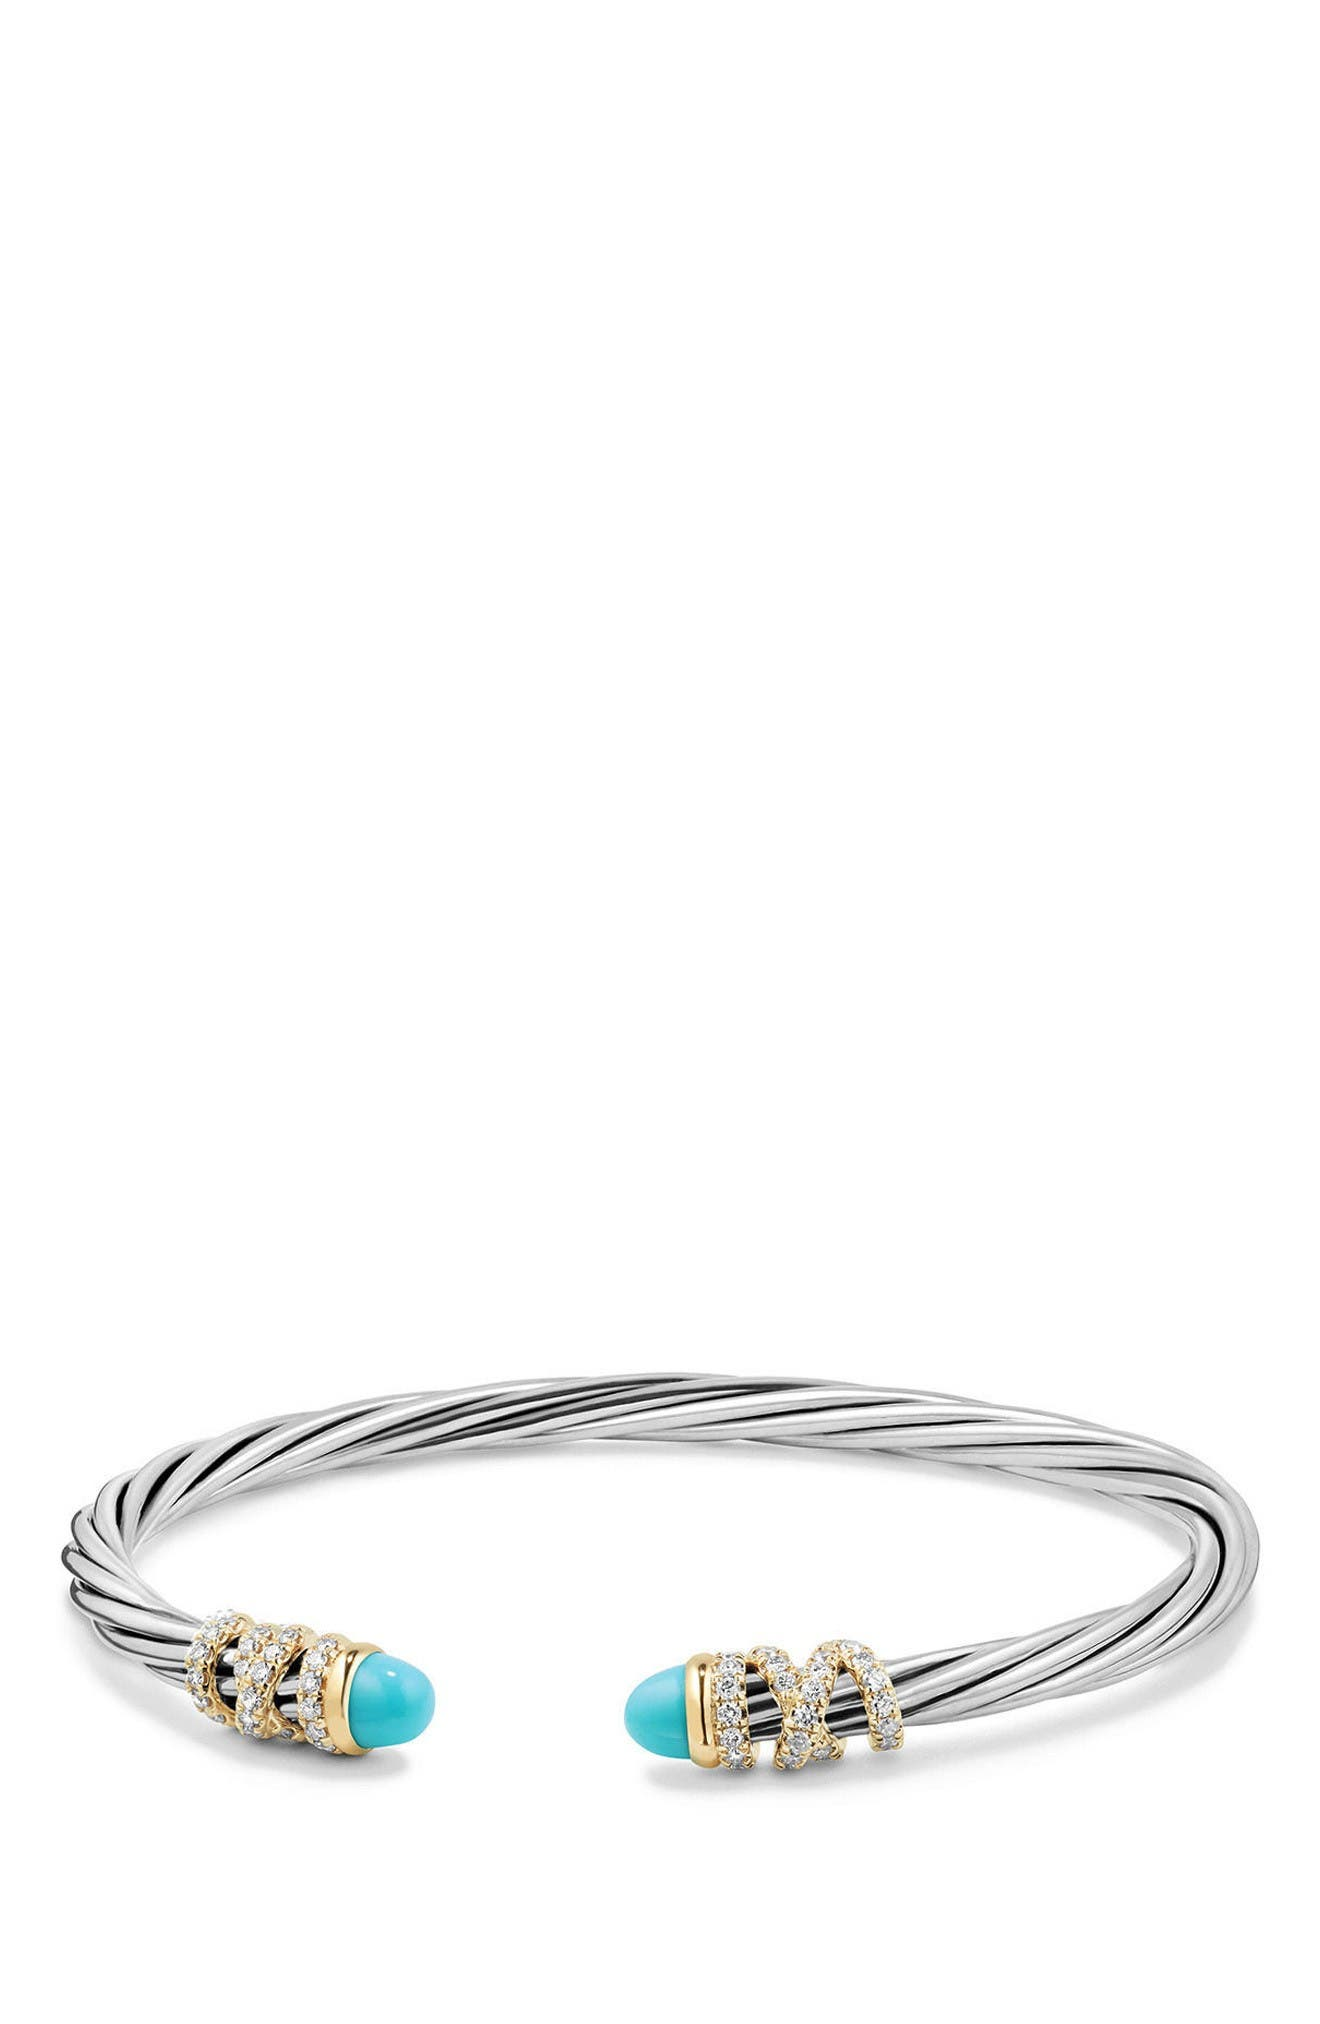 Helena End Station Bracelet with Diamonds & 18K Gold, 4mm,                         Main,                         color, Silver/ Turquoise